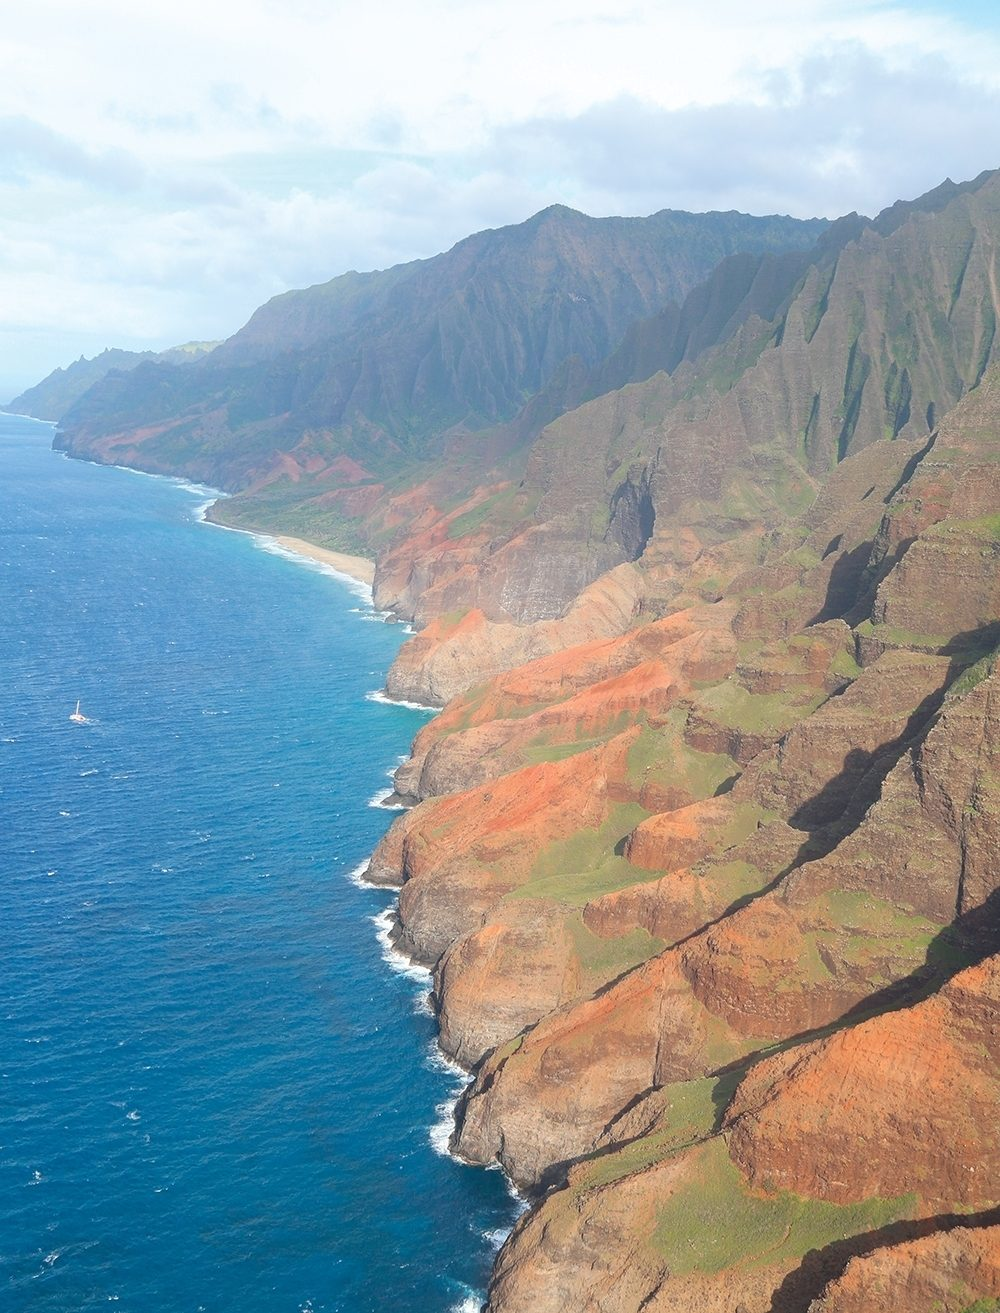 A portion of the Hawaiian coastline